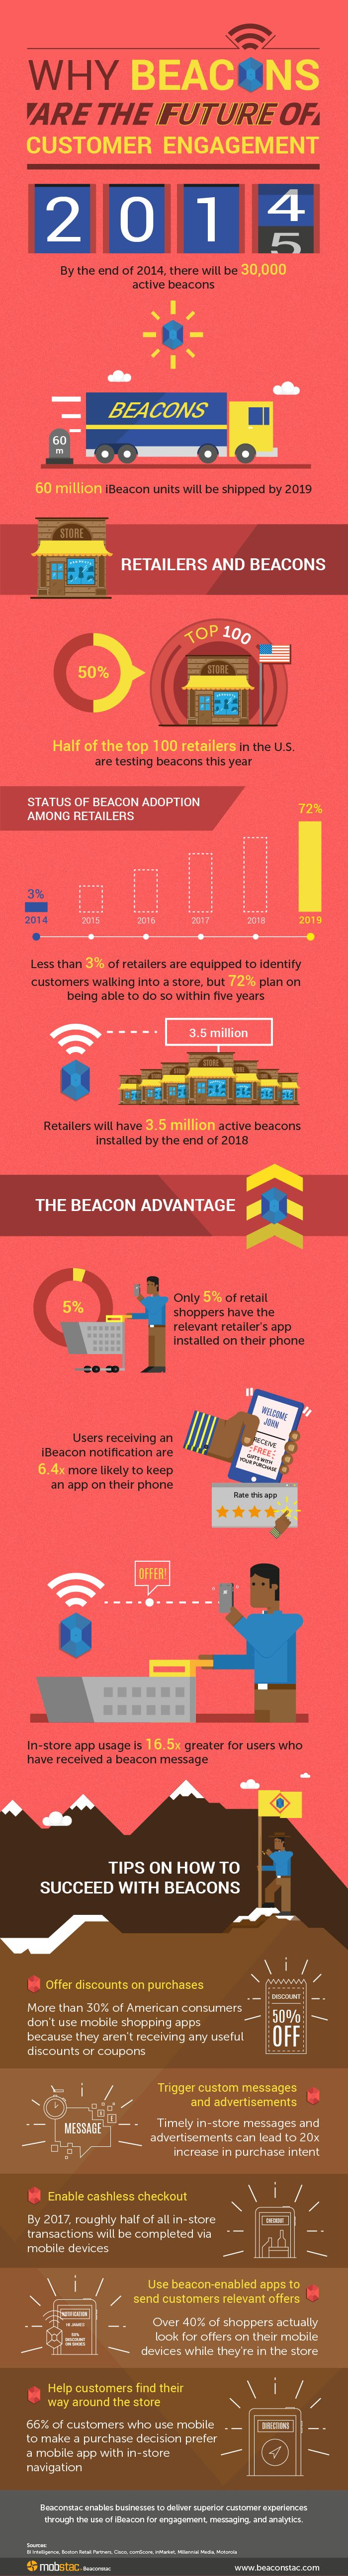 Why beacons are the future of customer engagement. Check out this infographic to know more about beacon trends in retail and for tips on how to succeed with beacons.